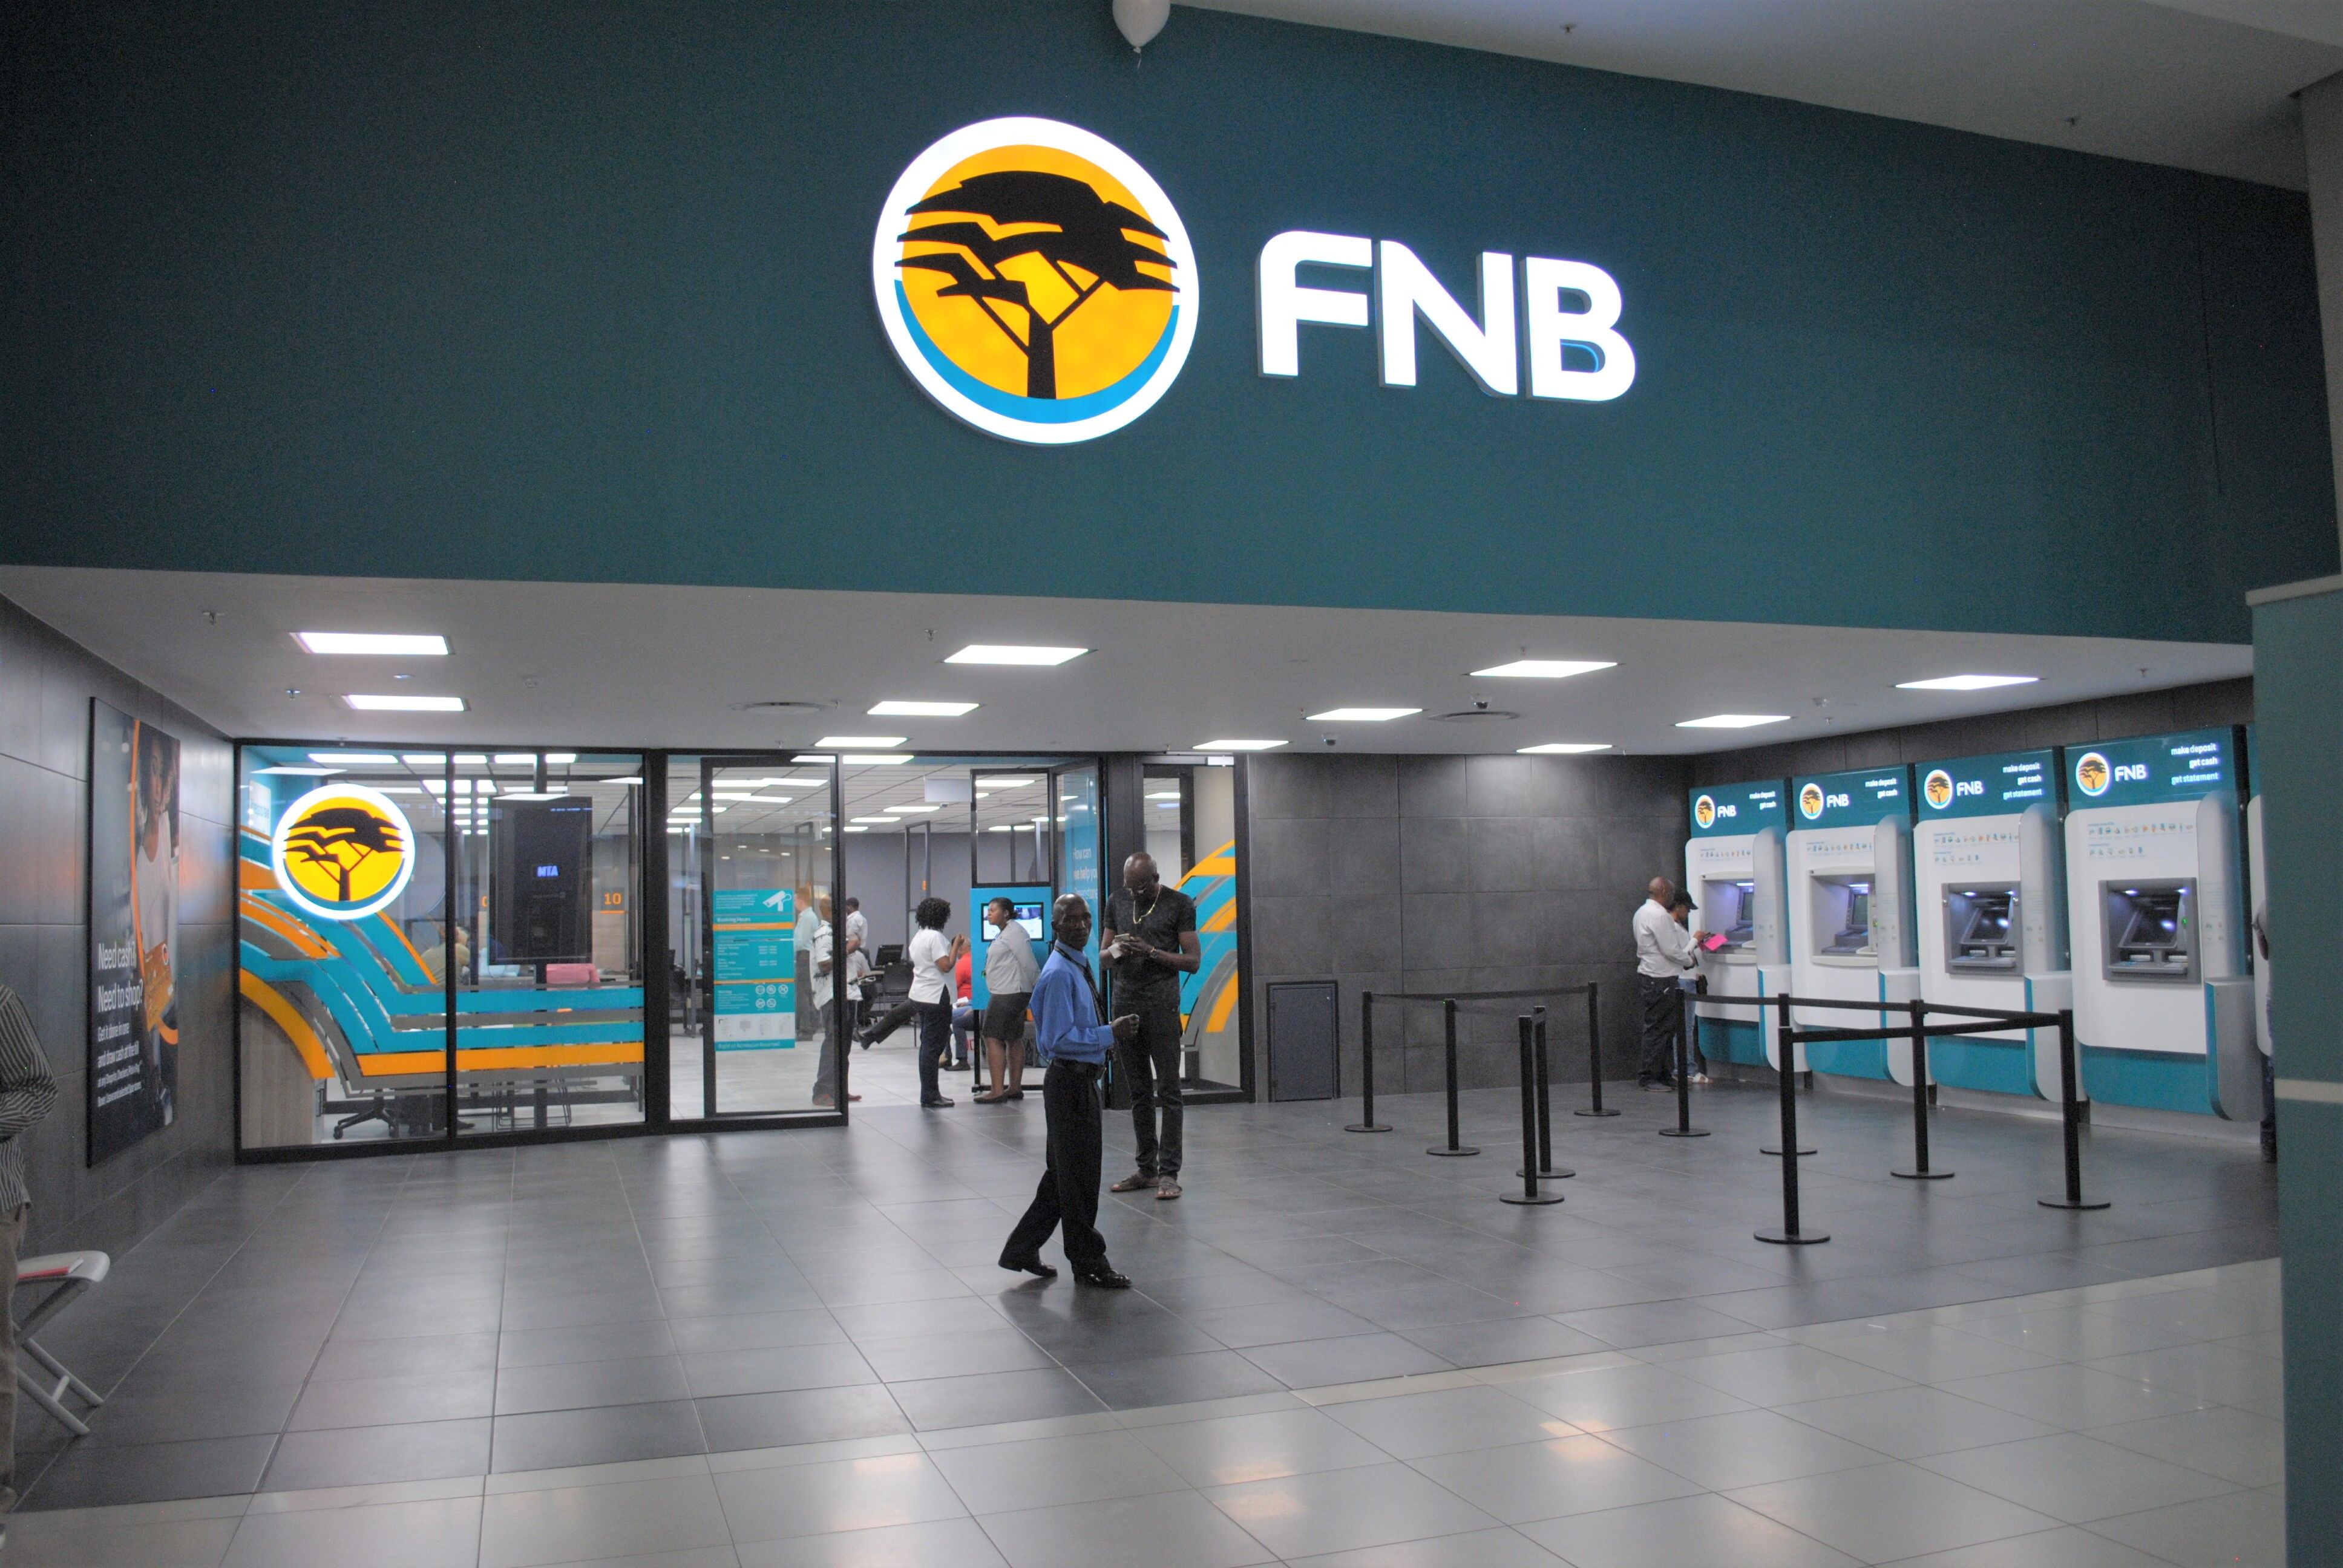 Greenstone Shopping Centre | FNB - Branch | Mallguide